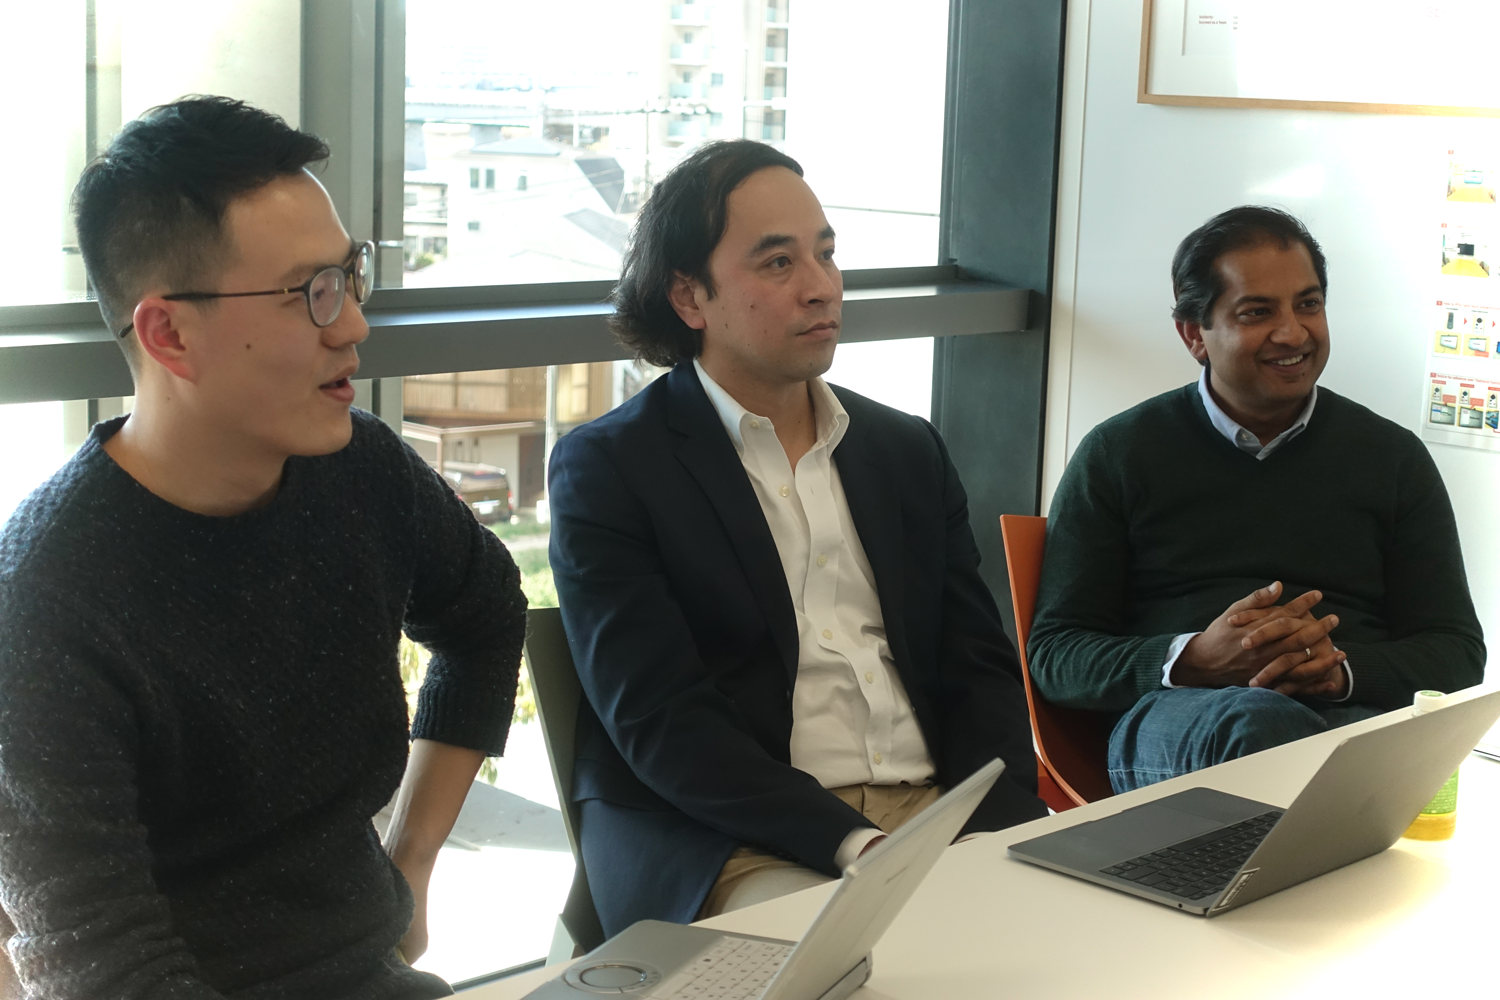 Tianyu Li (left) from Rakuten Institute of Technology, Hiroki Mizokami (center), from Rakuten's AIris Science Team, and Ashish Pandey (right) senior vice president of Data Science Products at Rakuten USA explain how AIris helps brands find new customers they never knew existed.